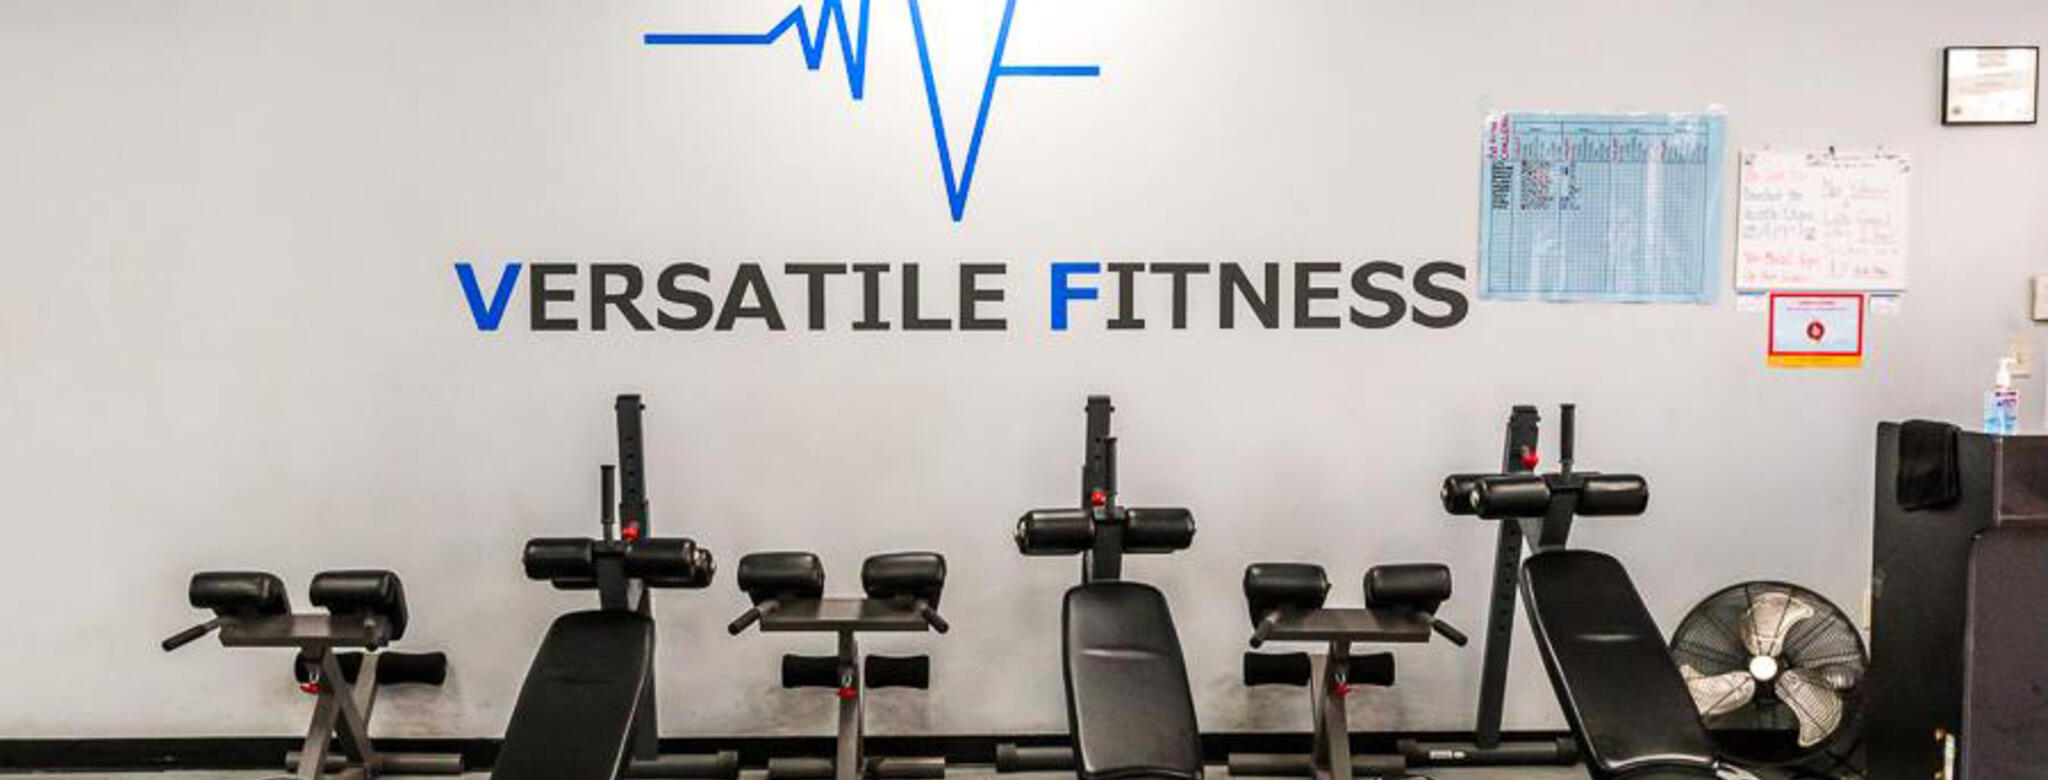 Versatile Fitness in San Diego, California